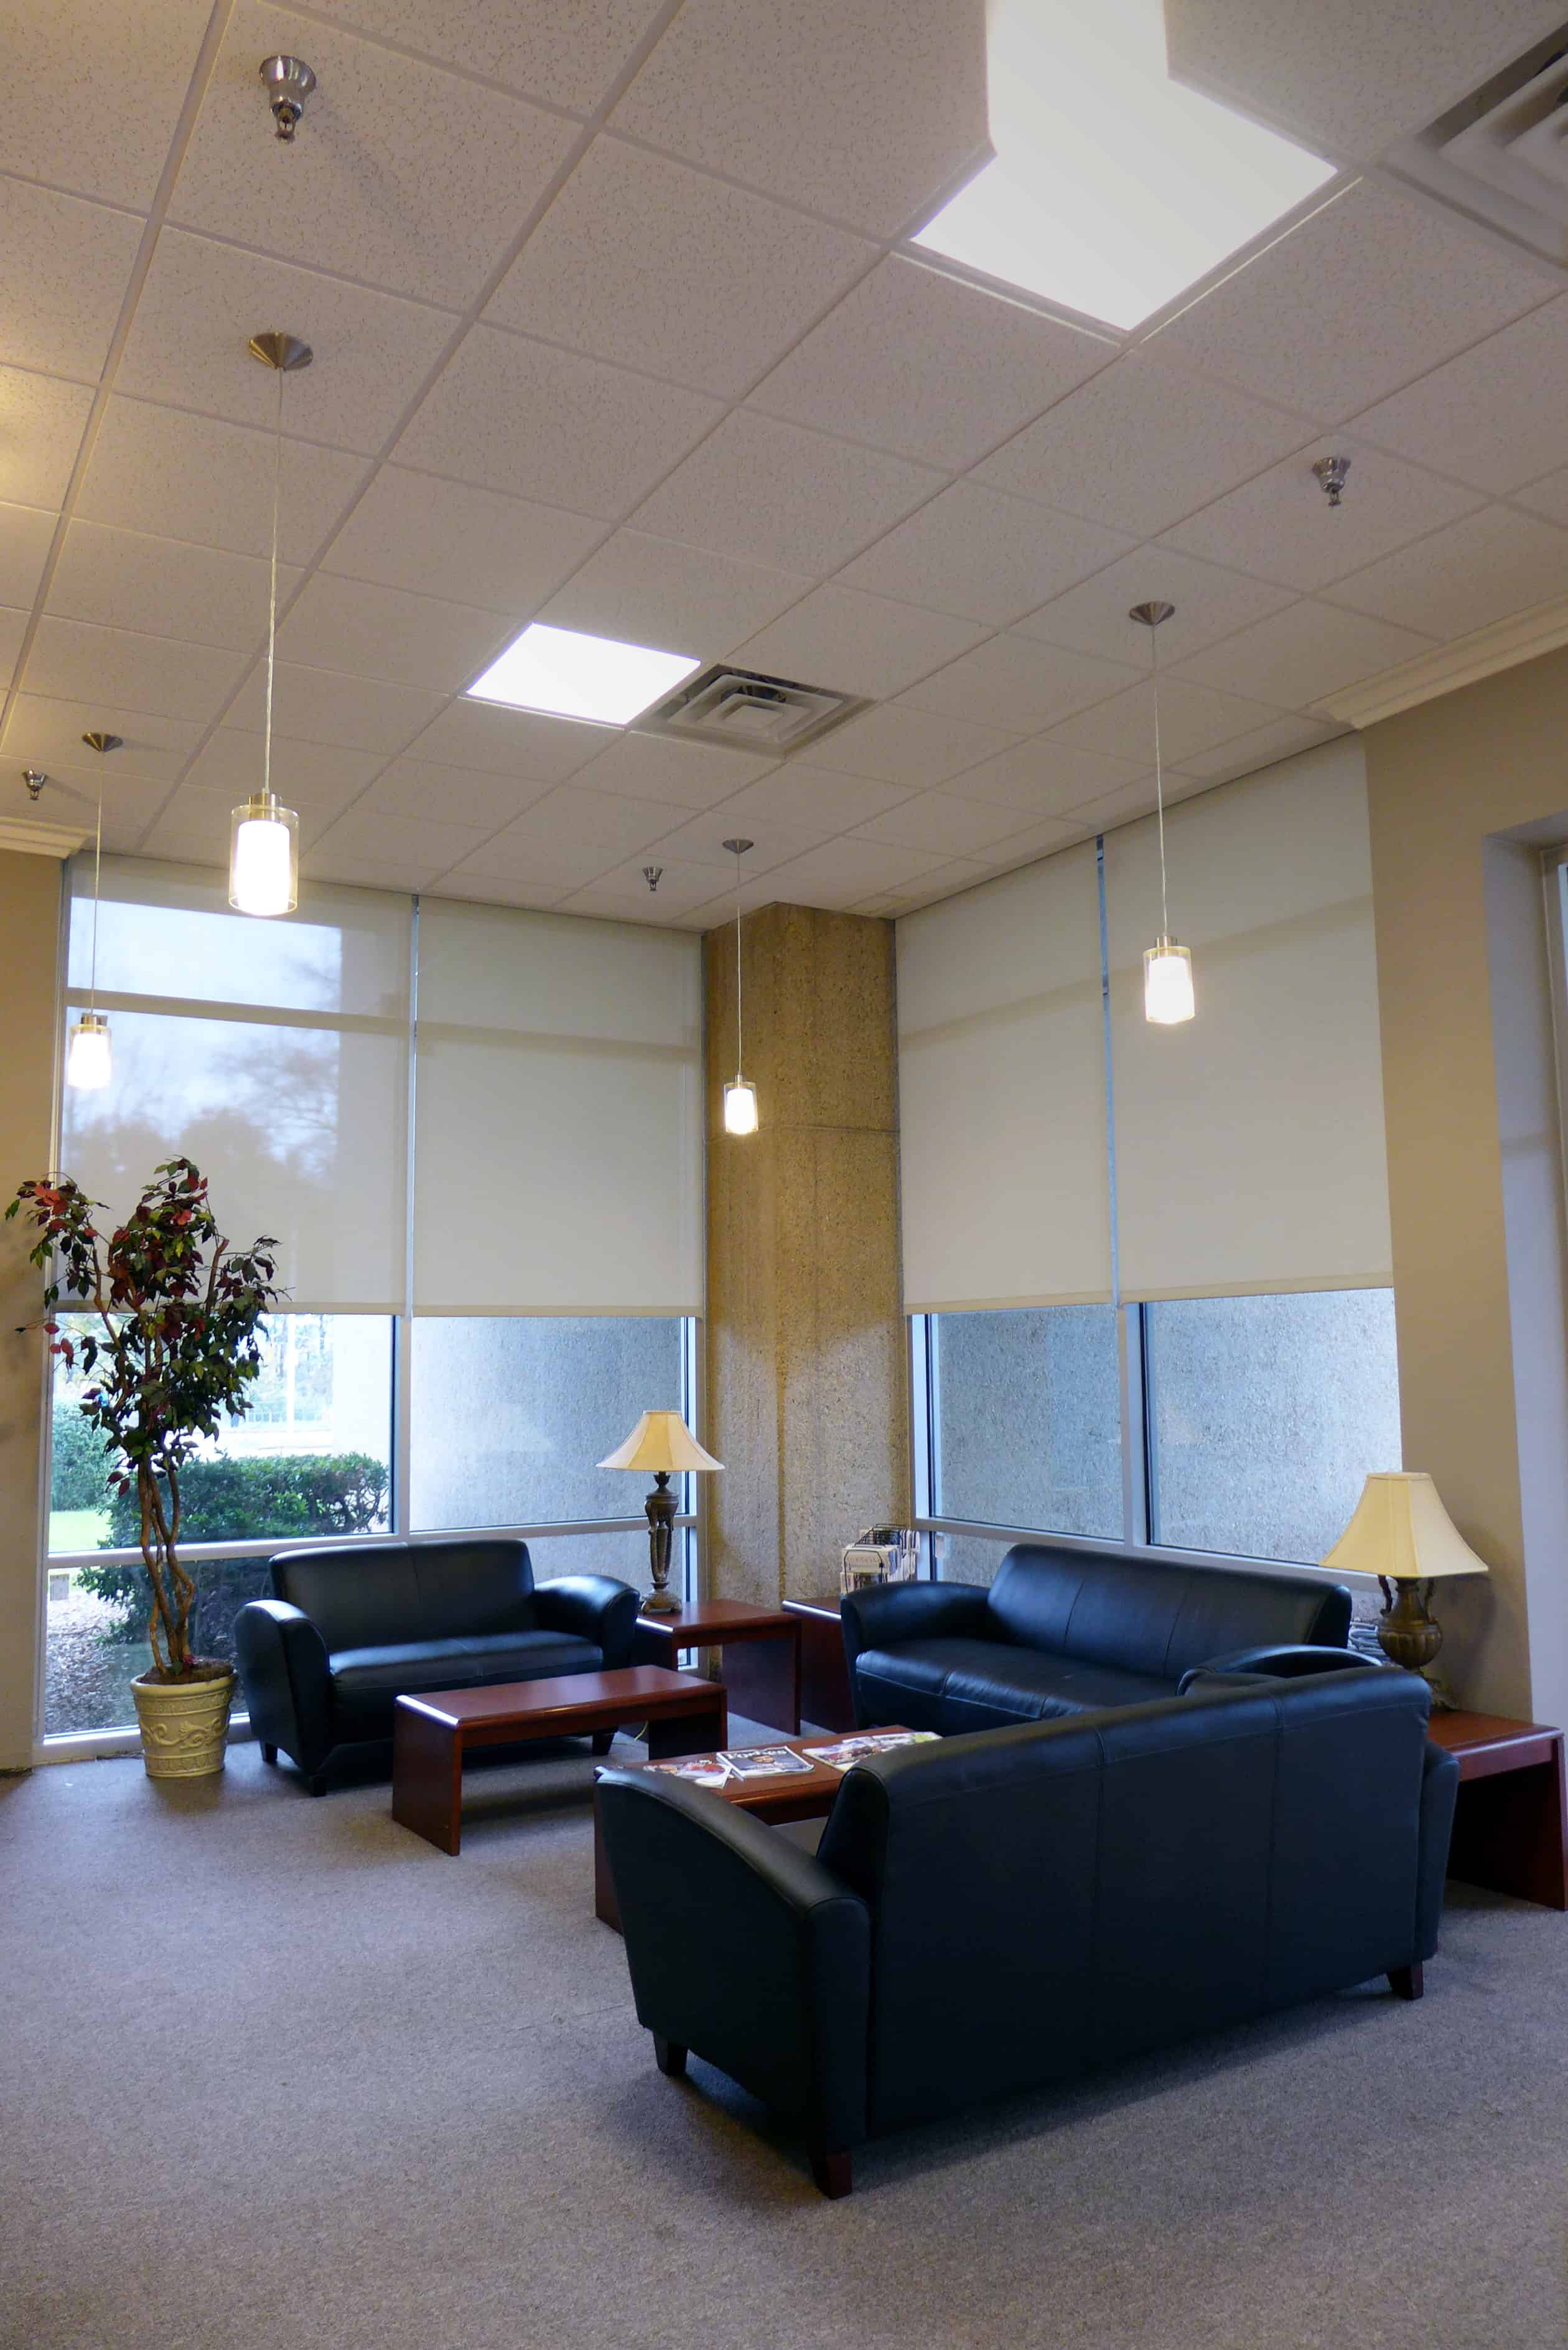 Dogwood_south lobby_1